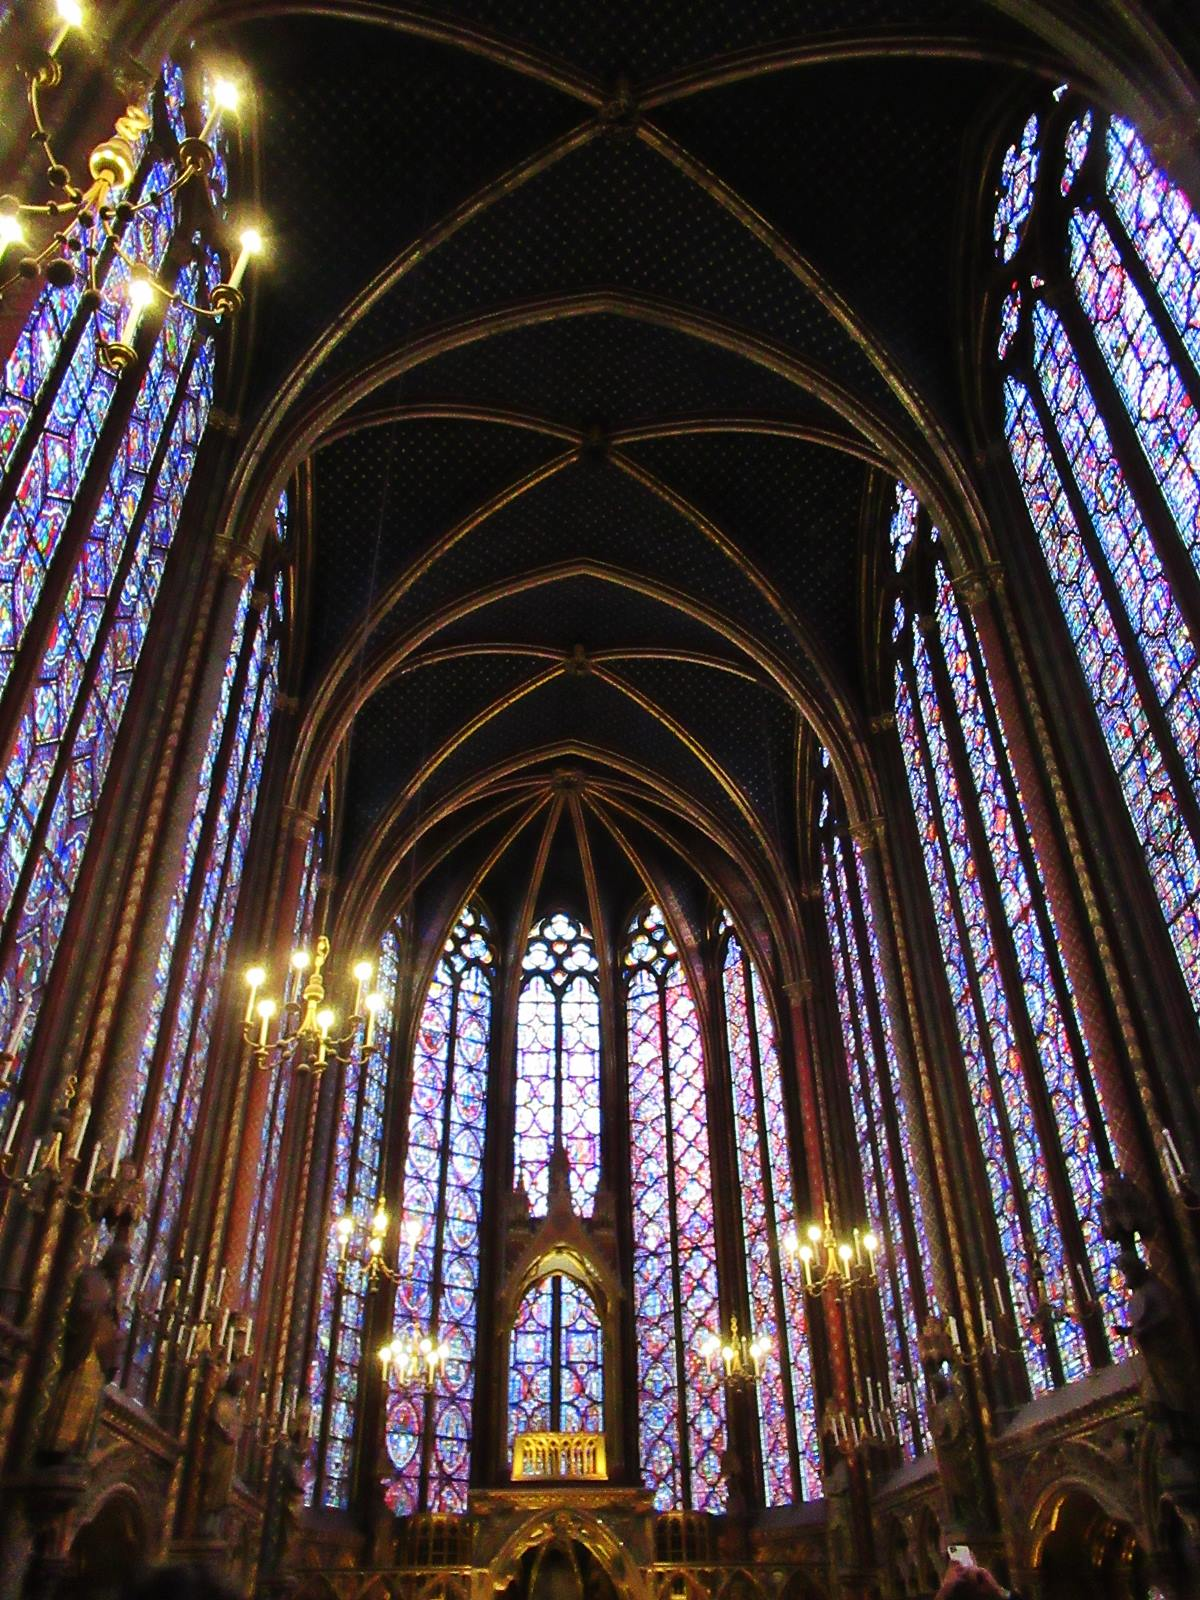 La sainte chapelle paris cite chateletsainte chapelle paris 3